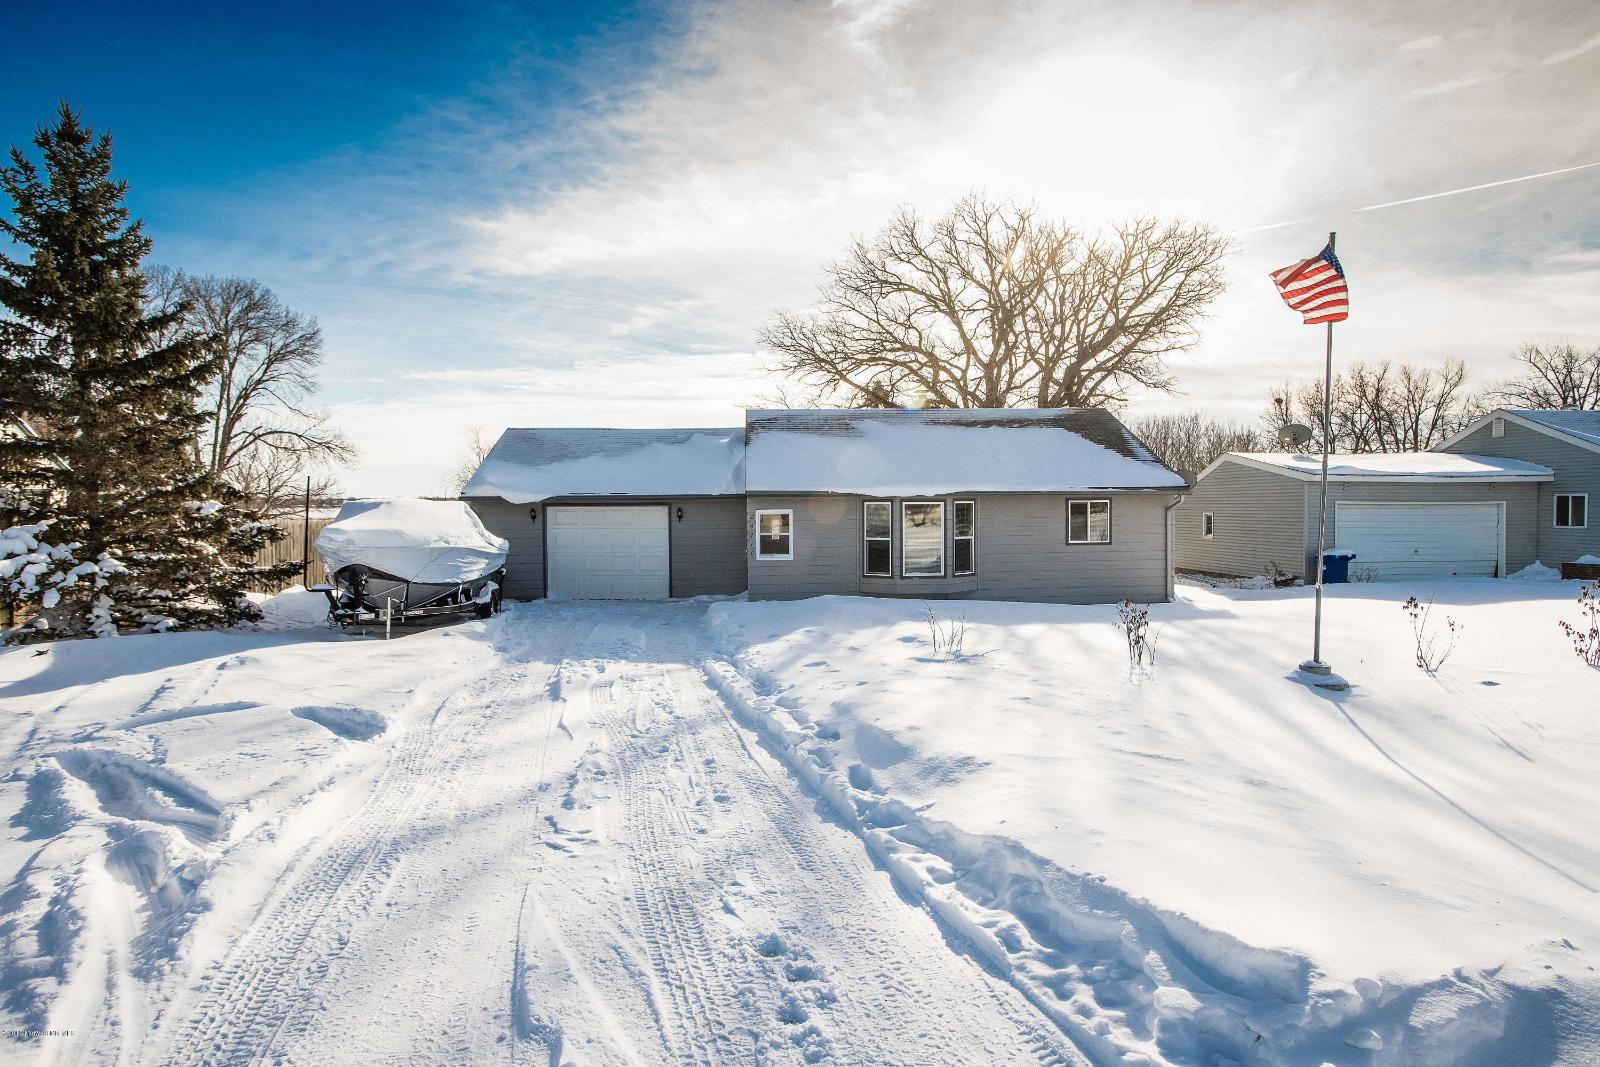 24710 N Wall Lake Drive, Fergus Falls, MN 56537 | Image 1 of 45 from carousel